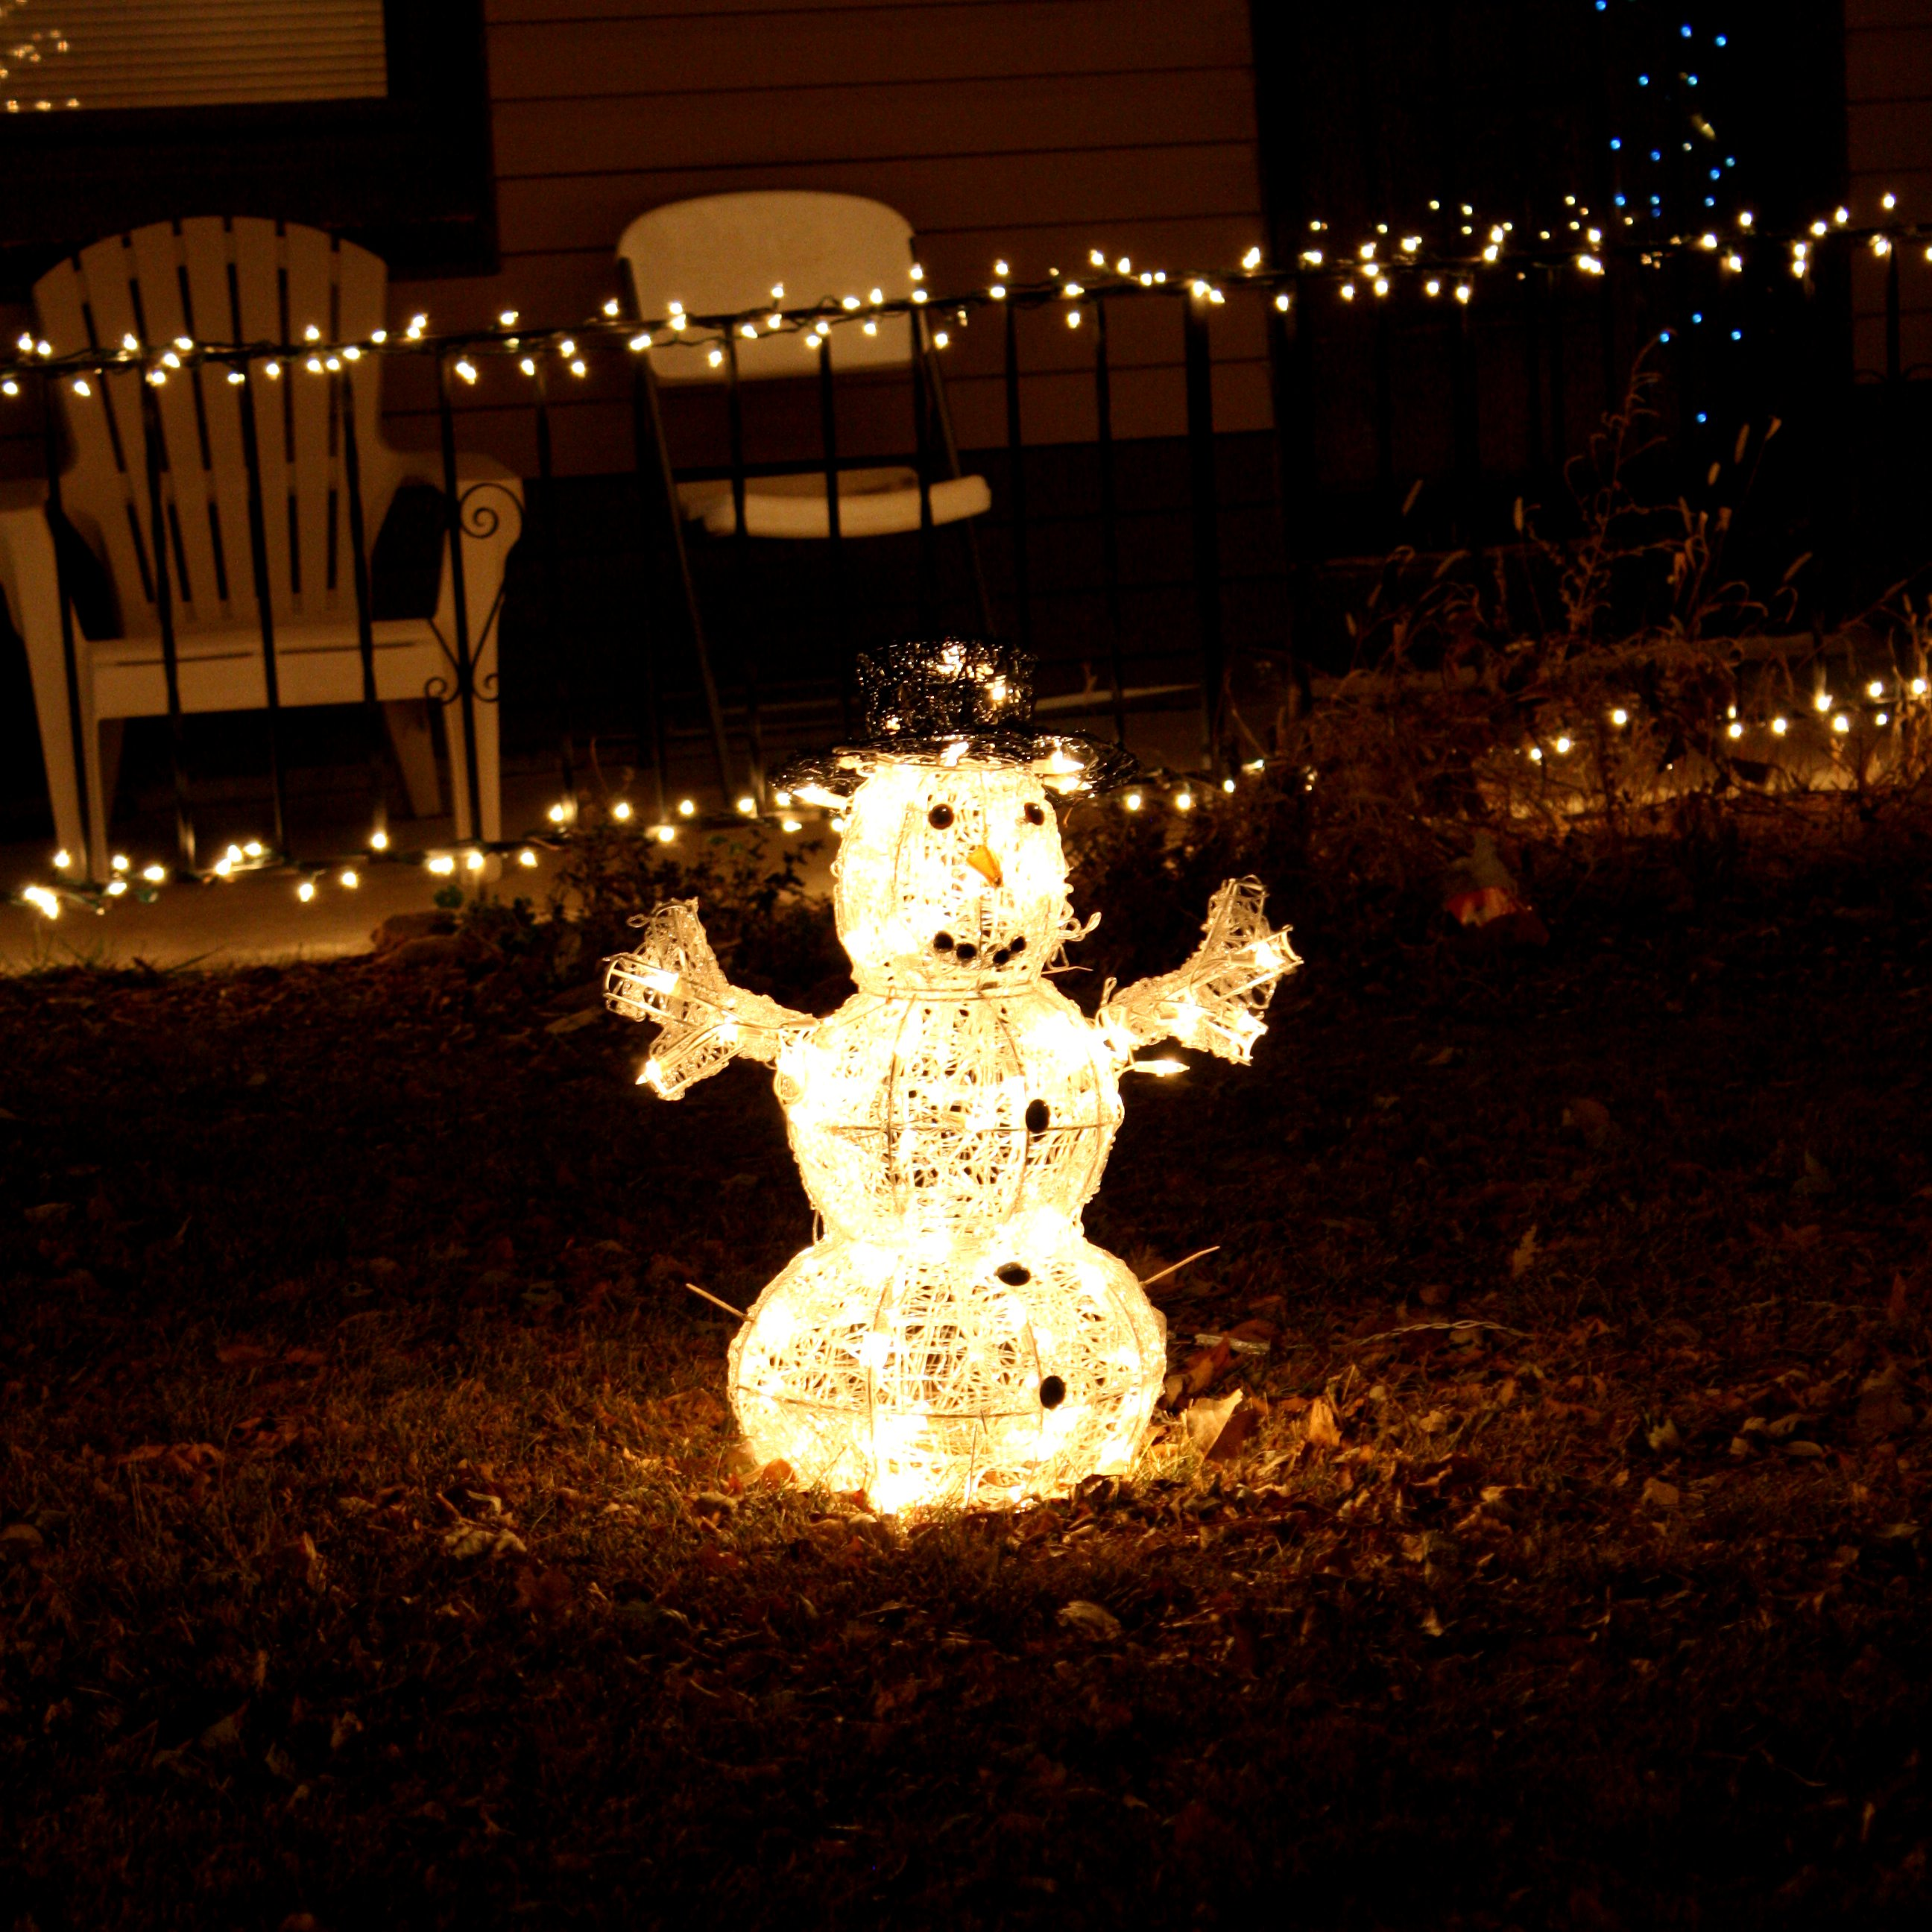 Snowman white christmas lights picture free photograph for Christmas lights and decorations